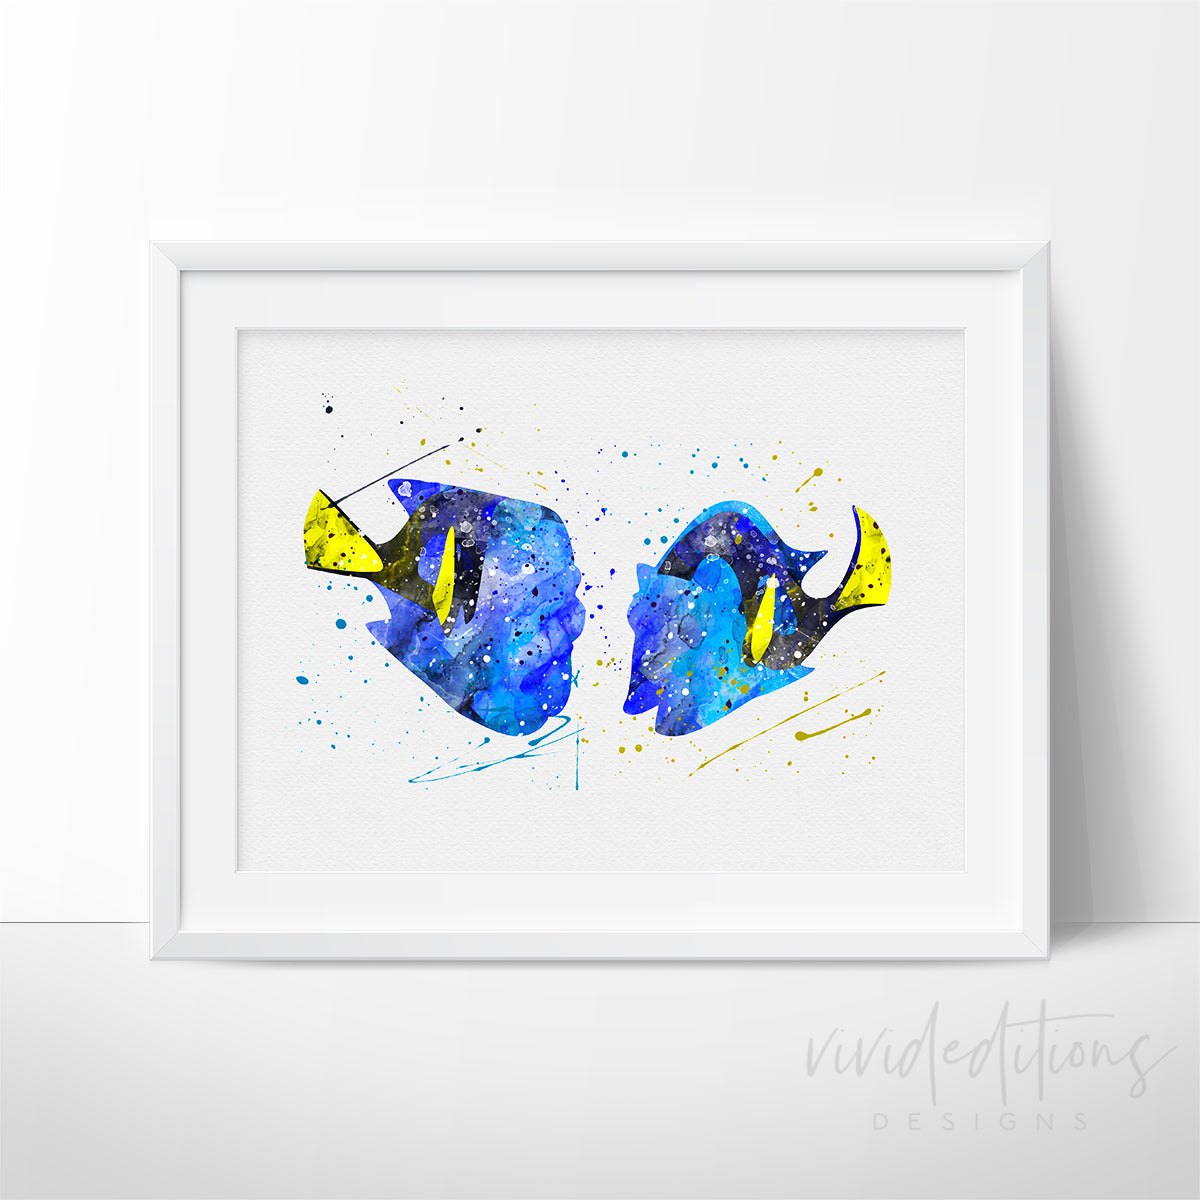 Finding Dory Watercolor Art Print Art Print - VIVIDEDITIONS